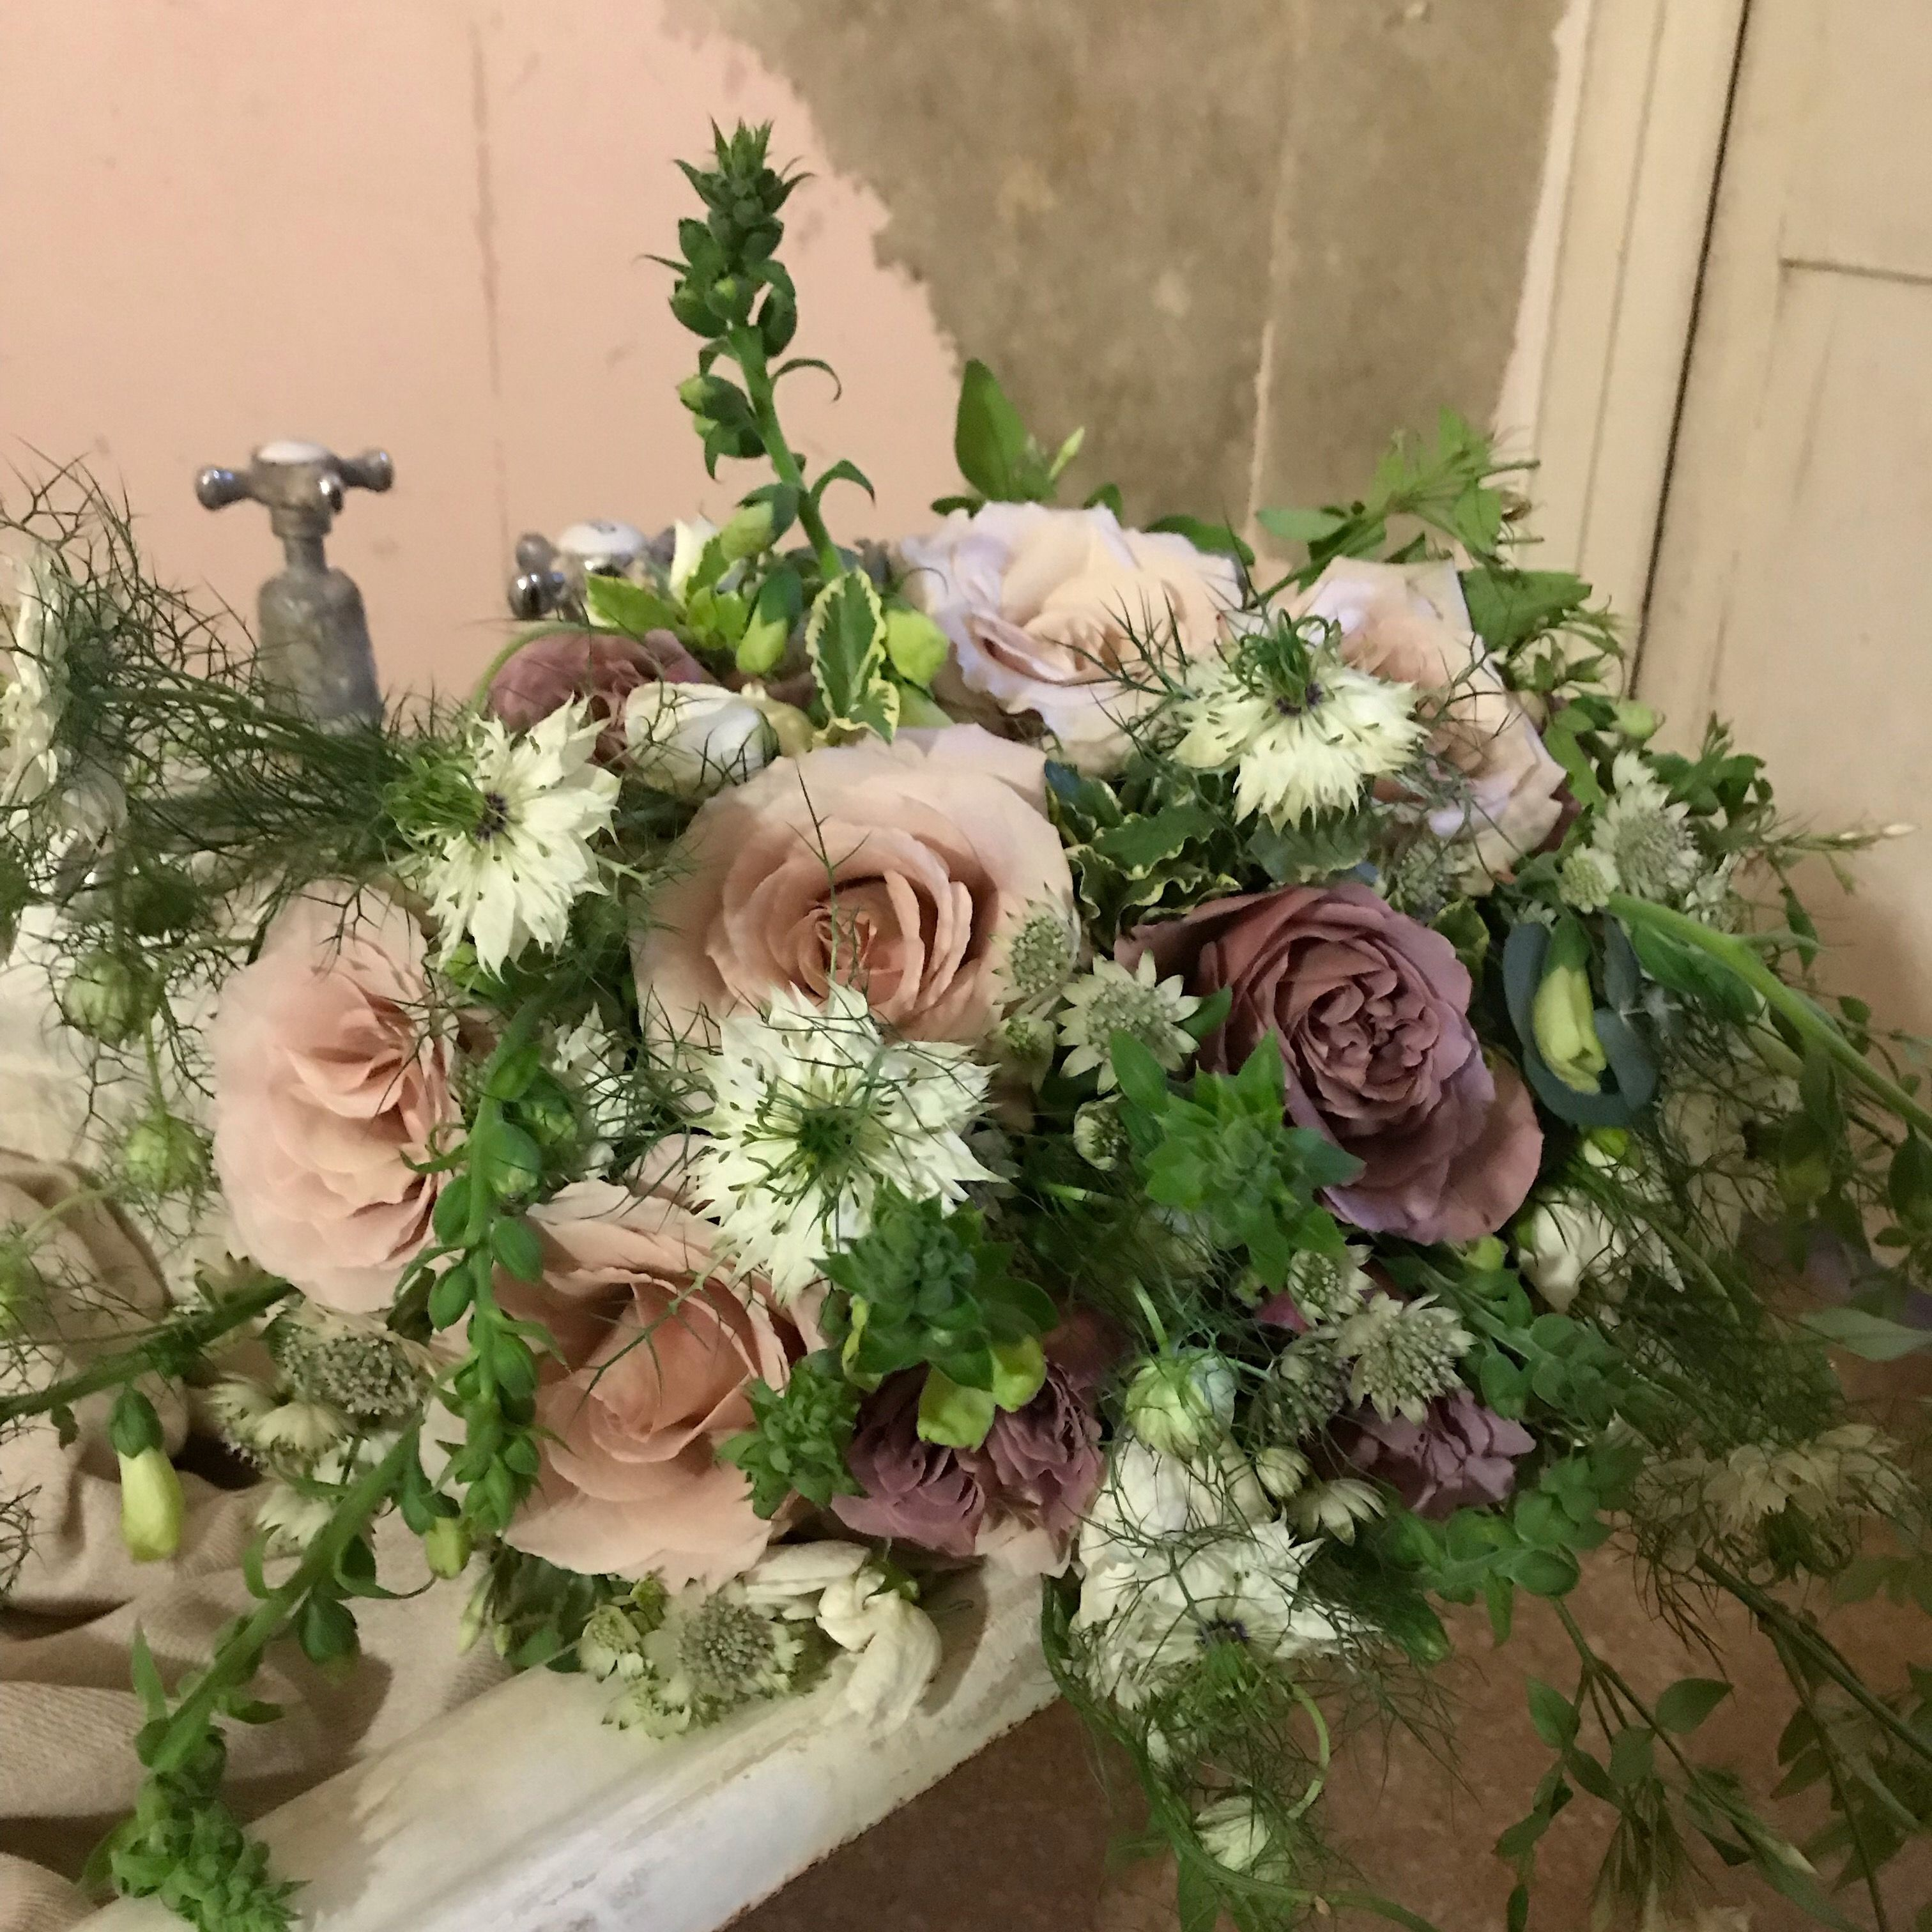 A Romantic Summer Wedding Country Garden Bouquet In Shades Of Pink Green And White Country Gardening Beautiful Flower Arrangements Flower Arrangements